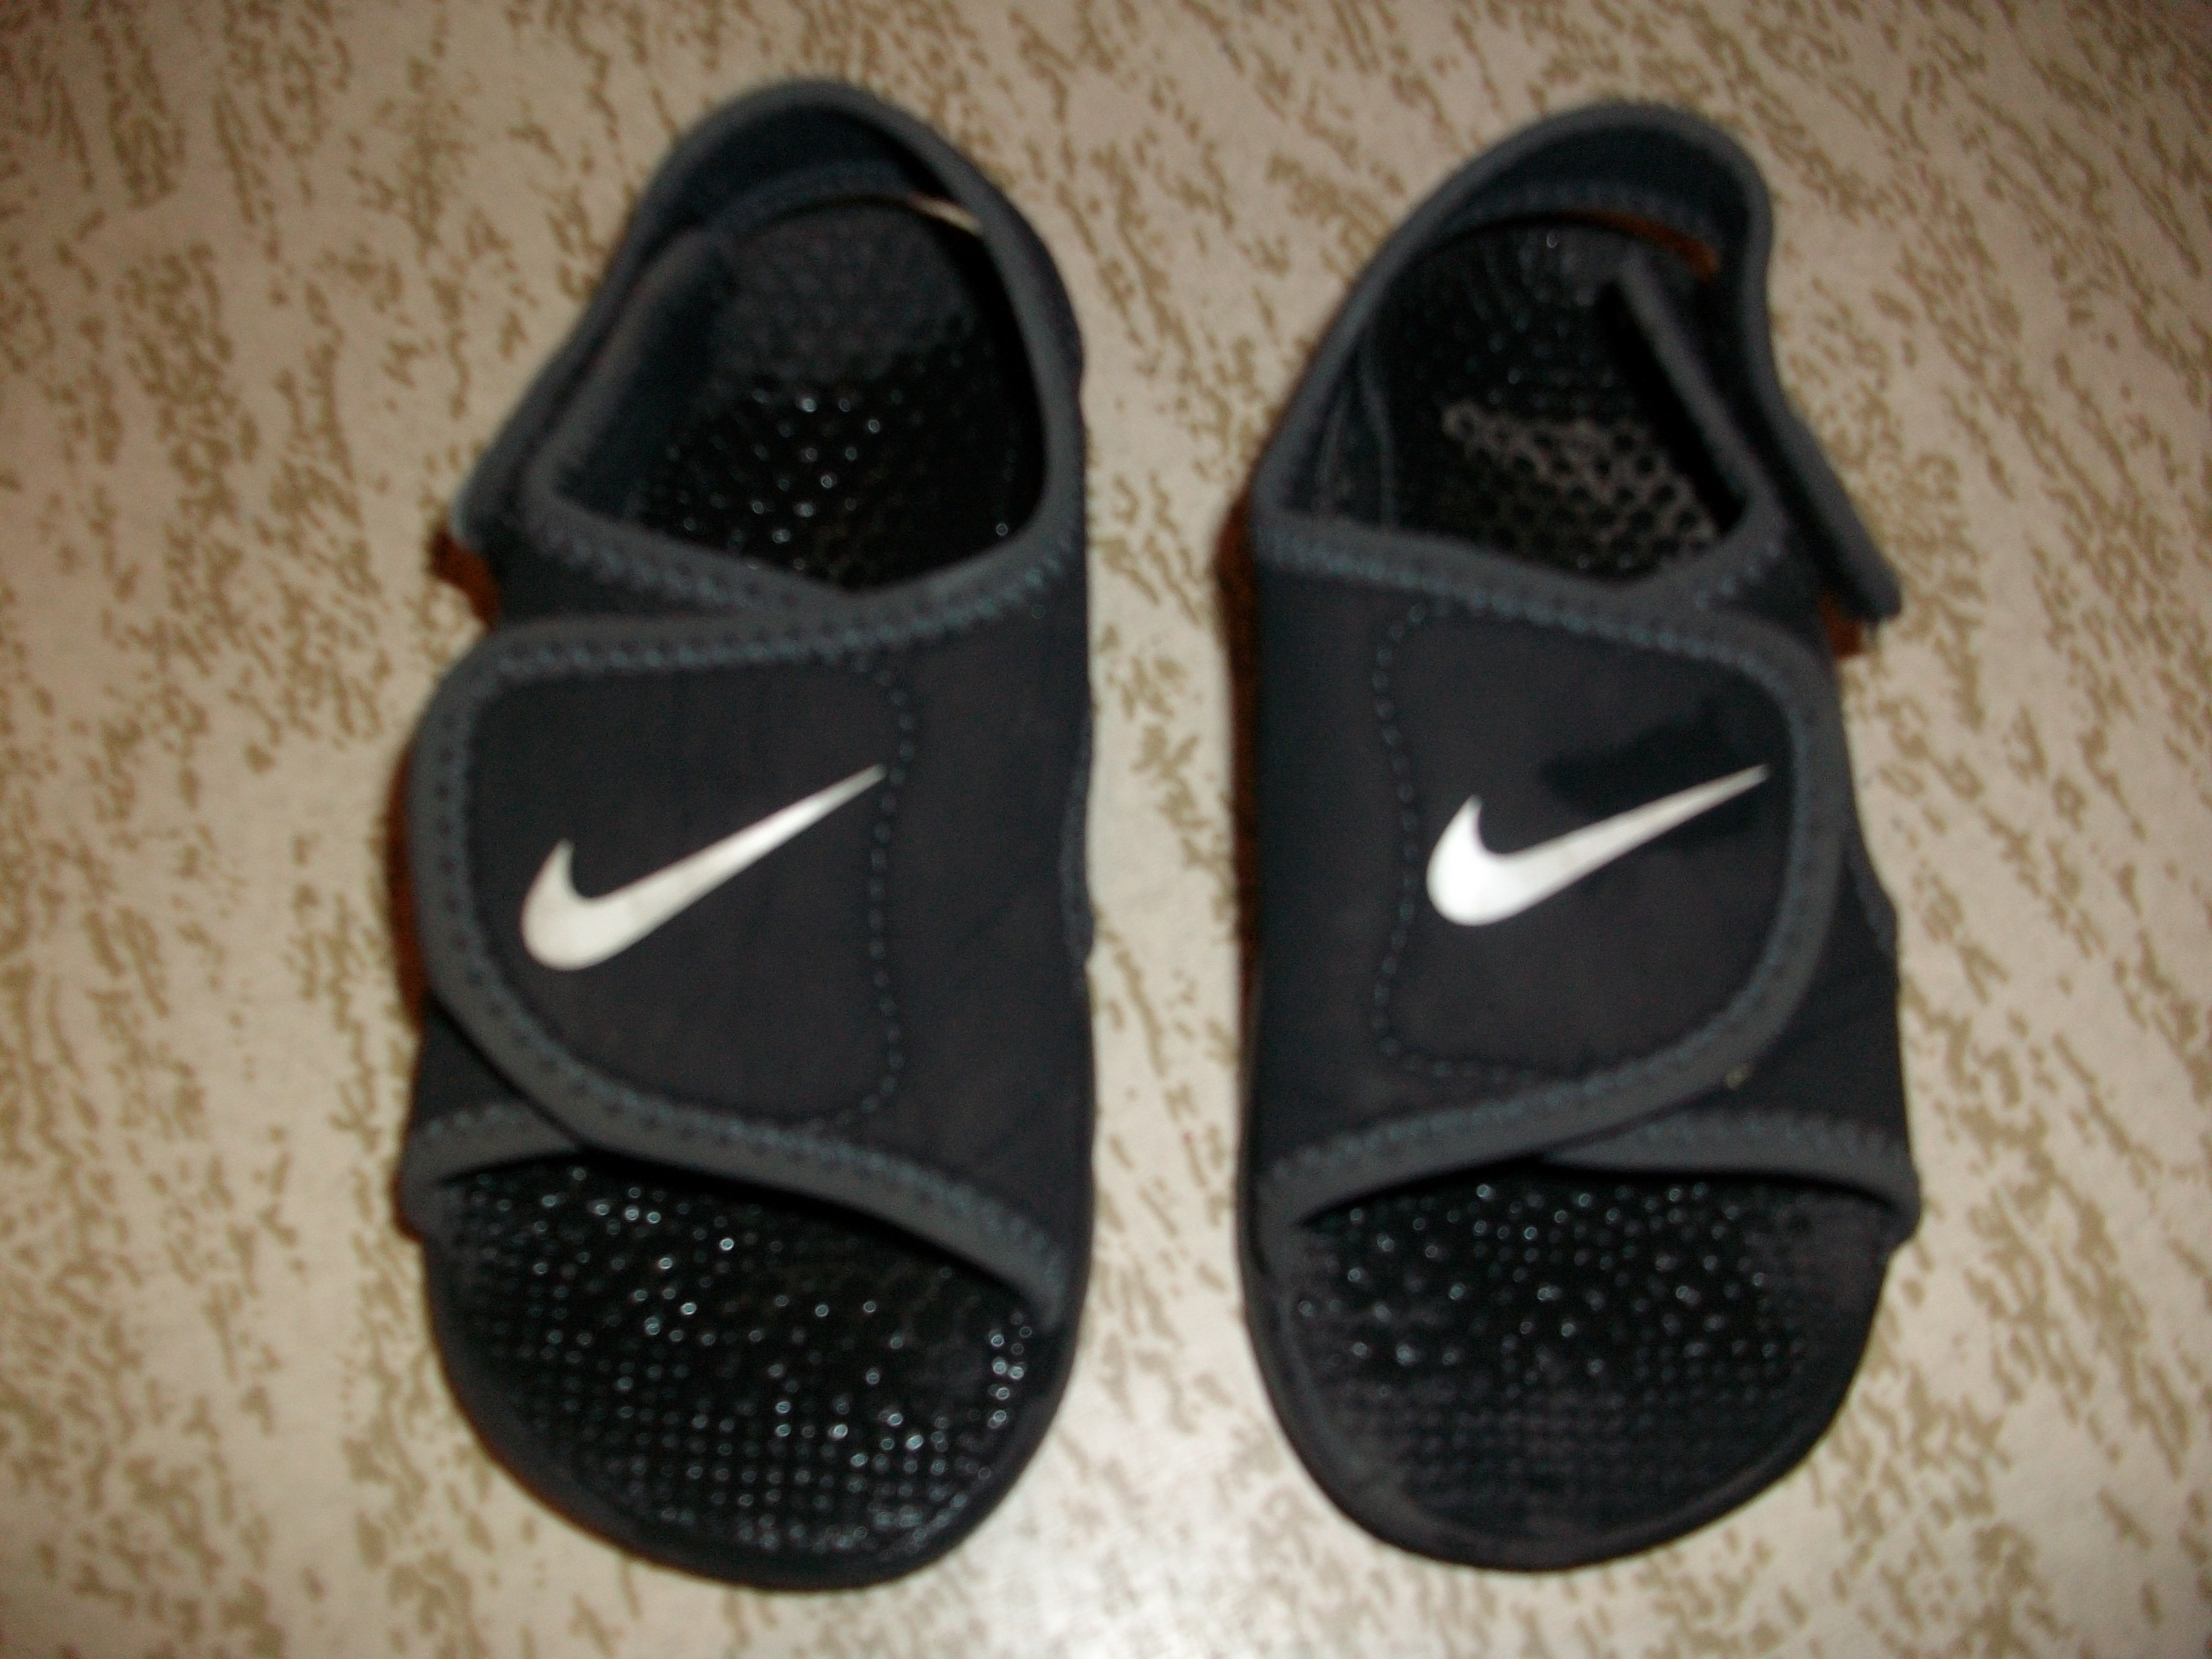 sandales nike pointure 25 chaussures gar on angie59150 photos club doctissimo. Black Bedroom Furniture Sets. Home Design Ideas